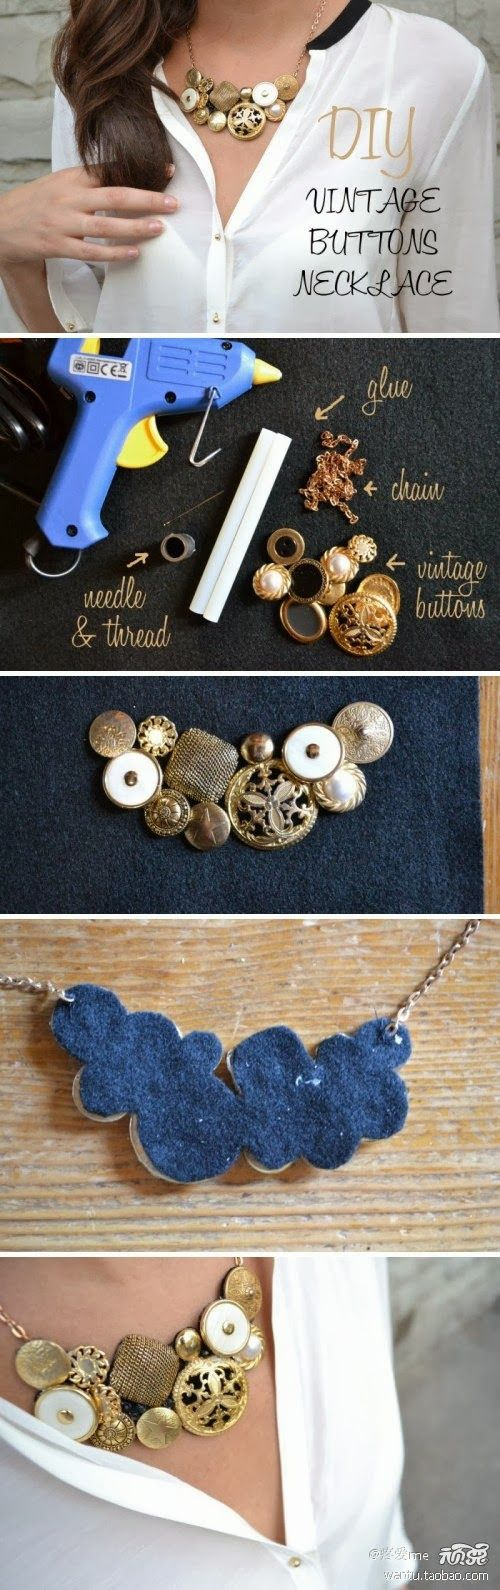 My DIY Projects: Make necklaces from vintage buttons